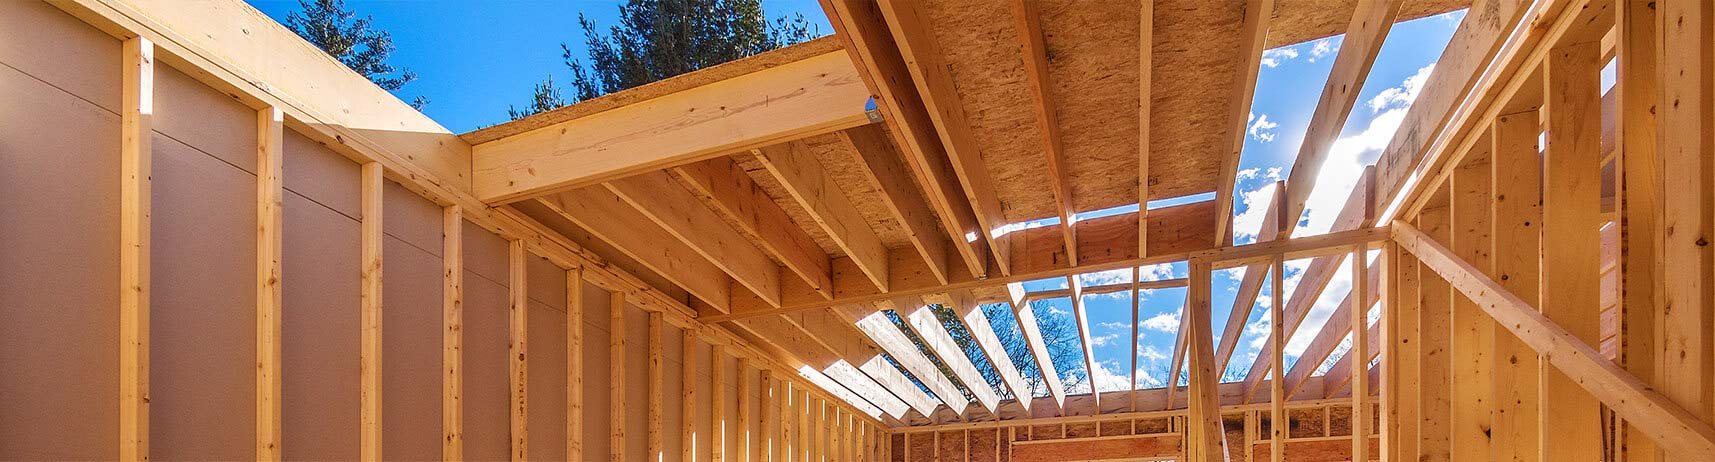 Cambridge General Contractor, Home Remodeling Contractor and Carpenter